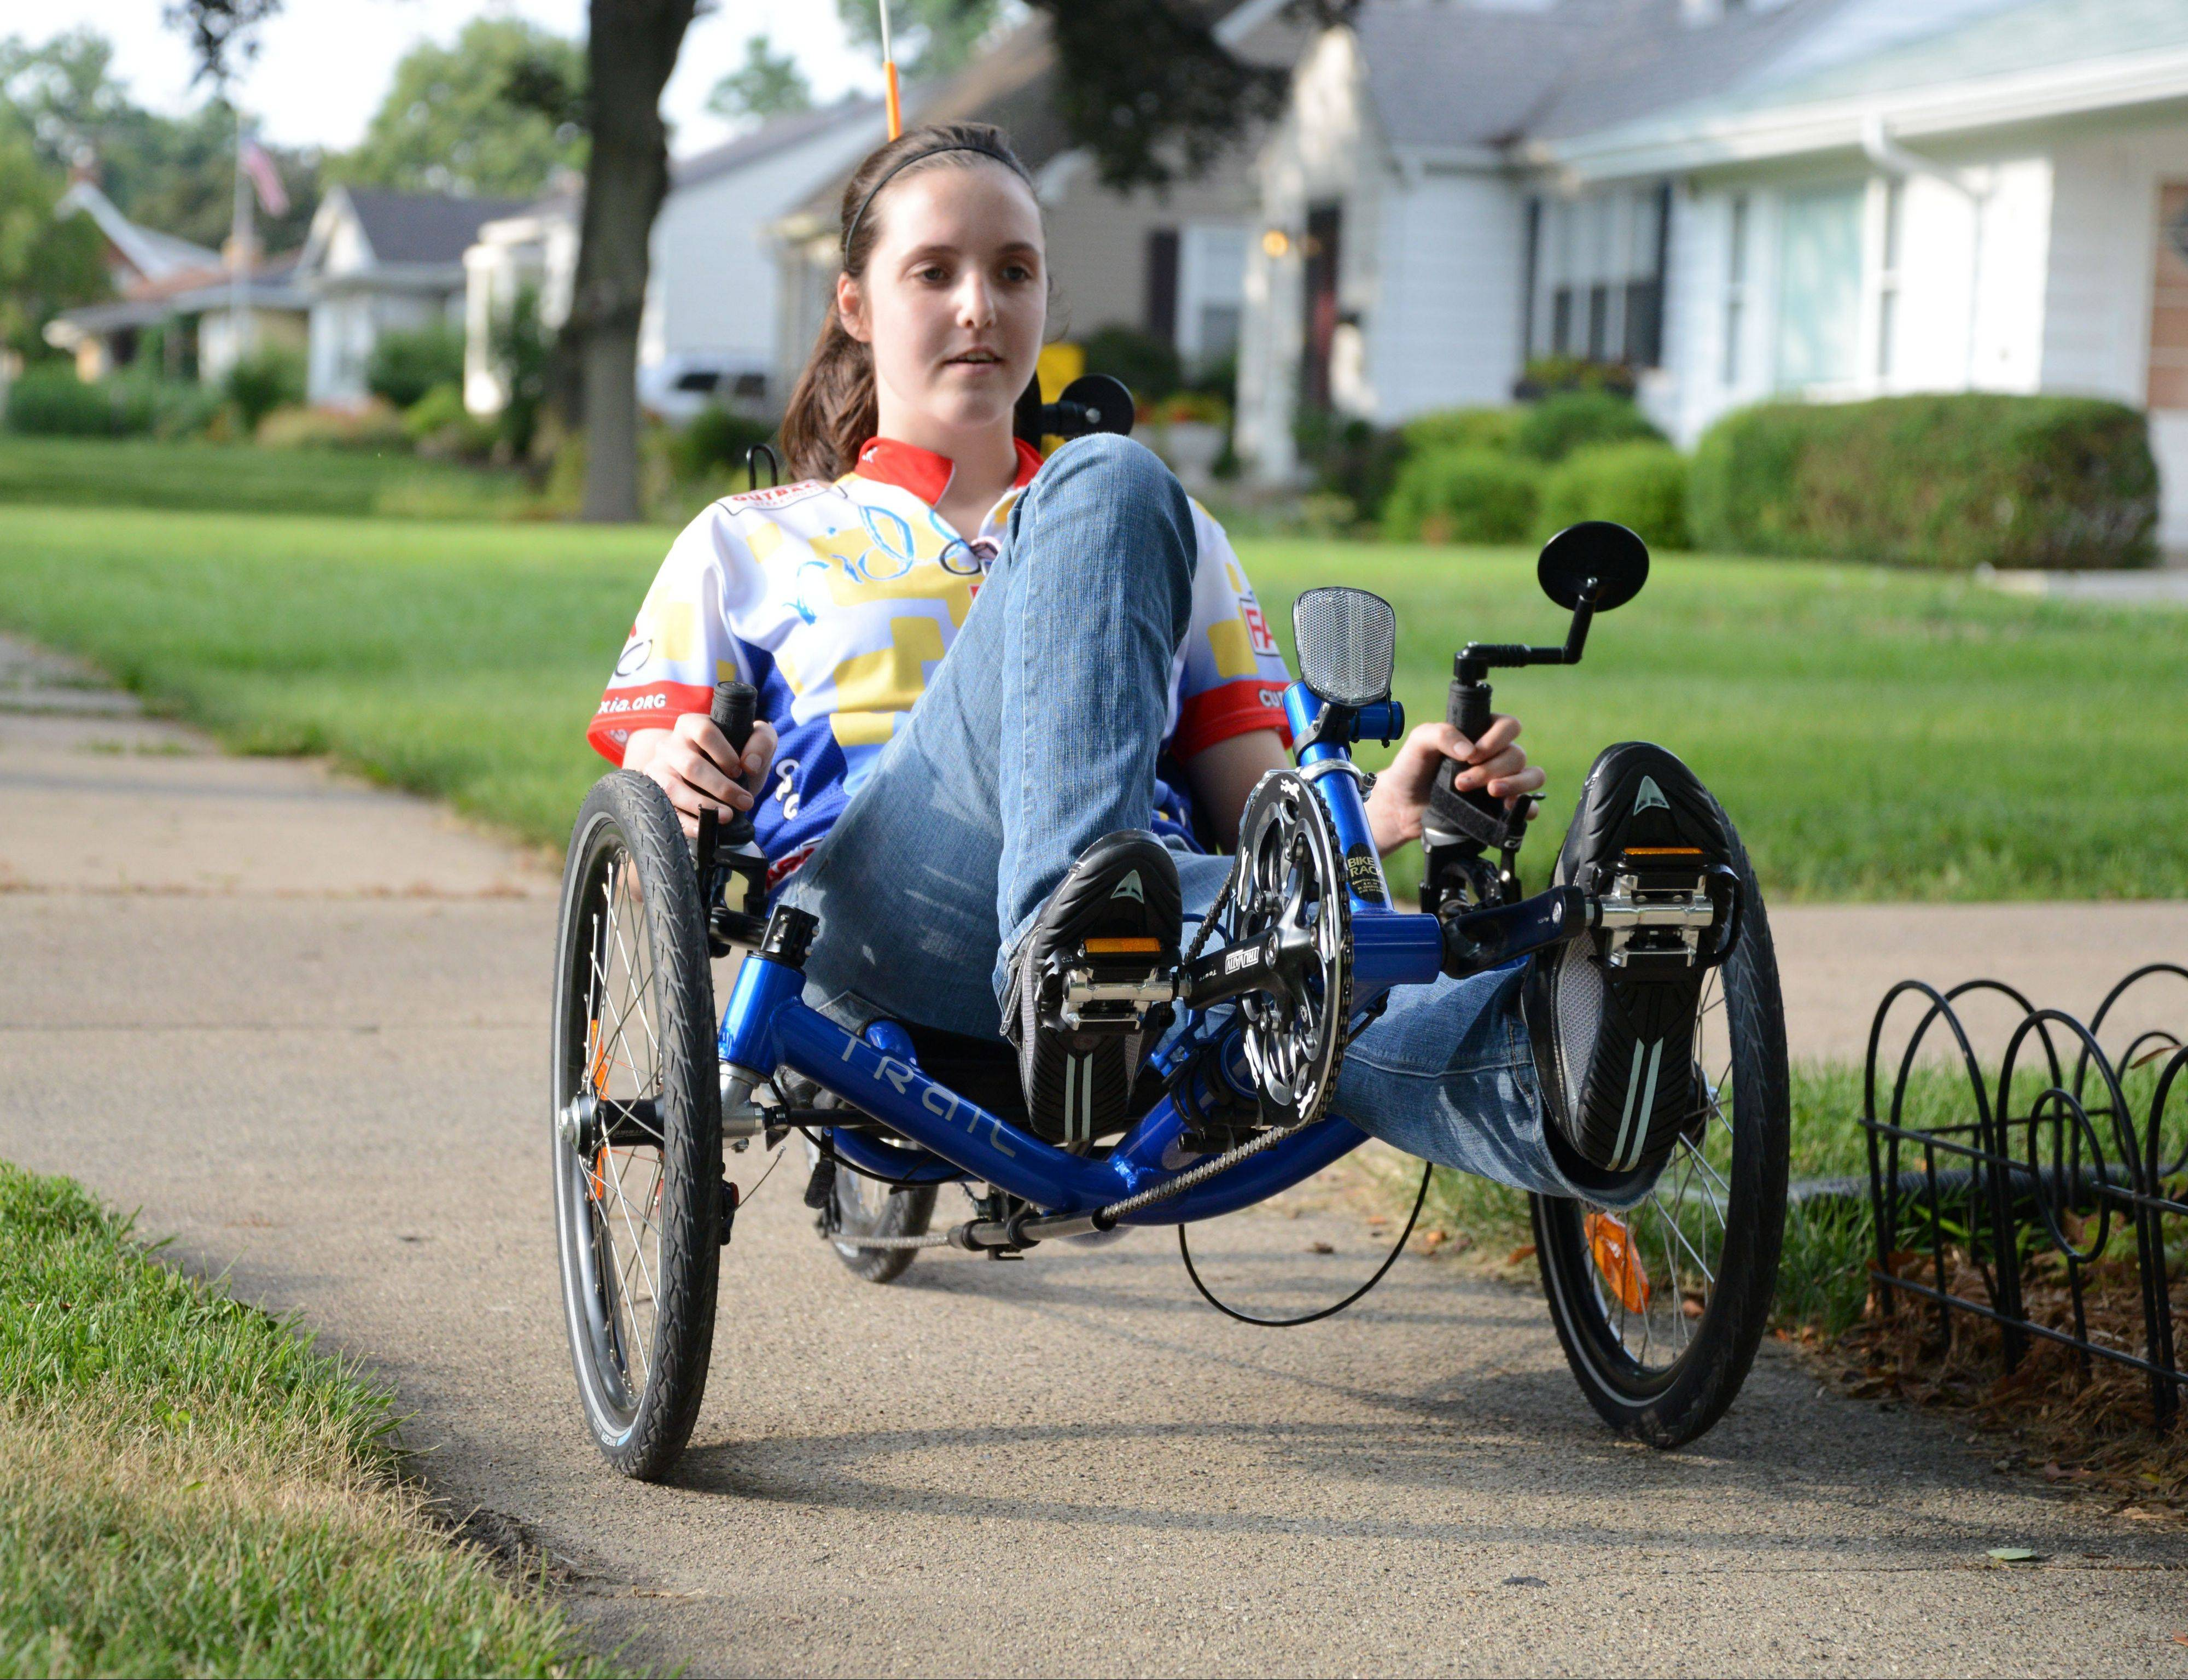 Friedreich's ataxia forces Nicole Kramer to use a walker to help with an unsteady gait, but the 19-year-old Villa Park woman finds freedom while cruising the neighborhood on her new custom cycle. She plans to ride in next Sunday's Ride Ataxia fundraiser through the southern suburbs.